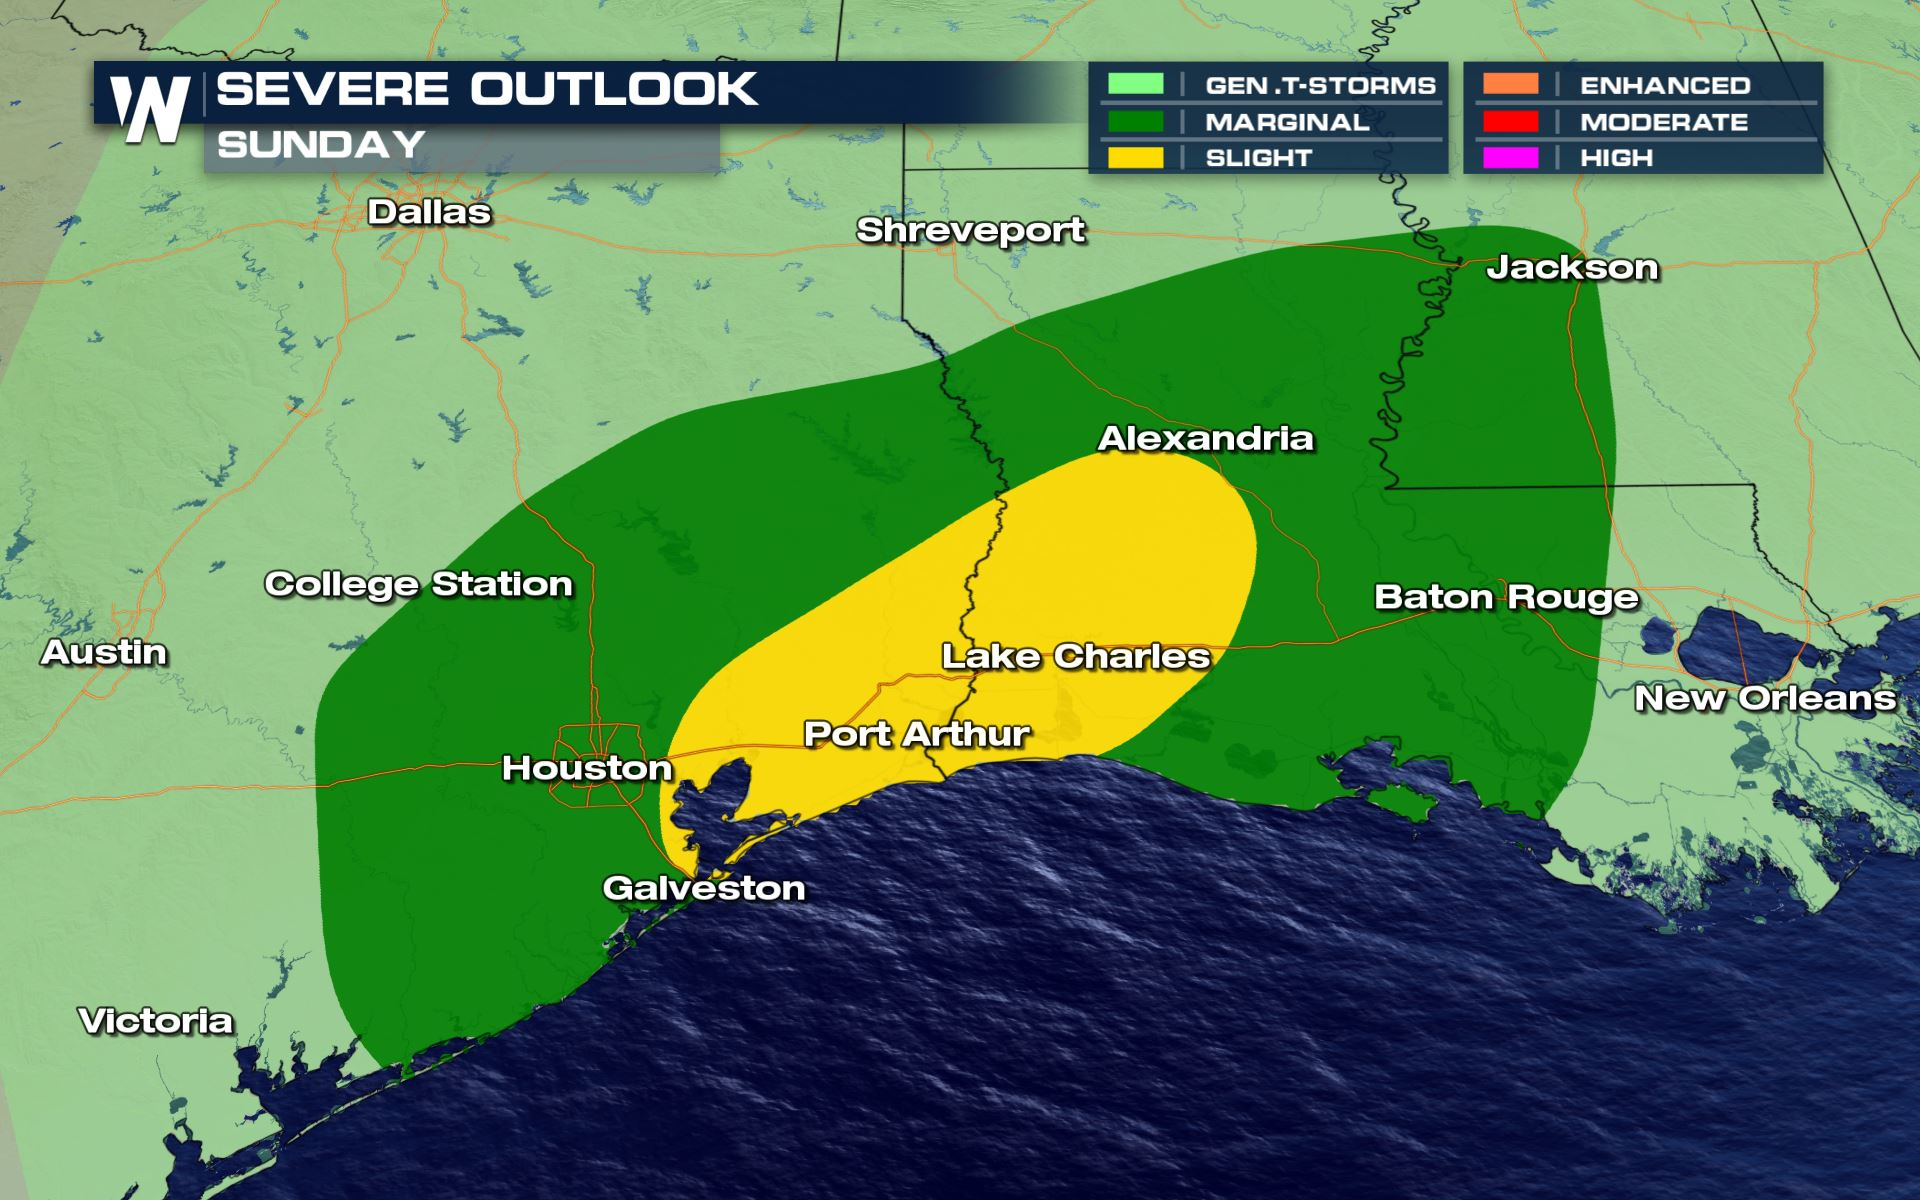 Heavy Rain and Severe Storms From Texas to Mississippi Sunday